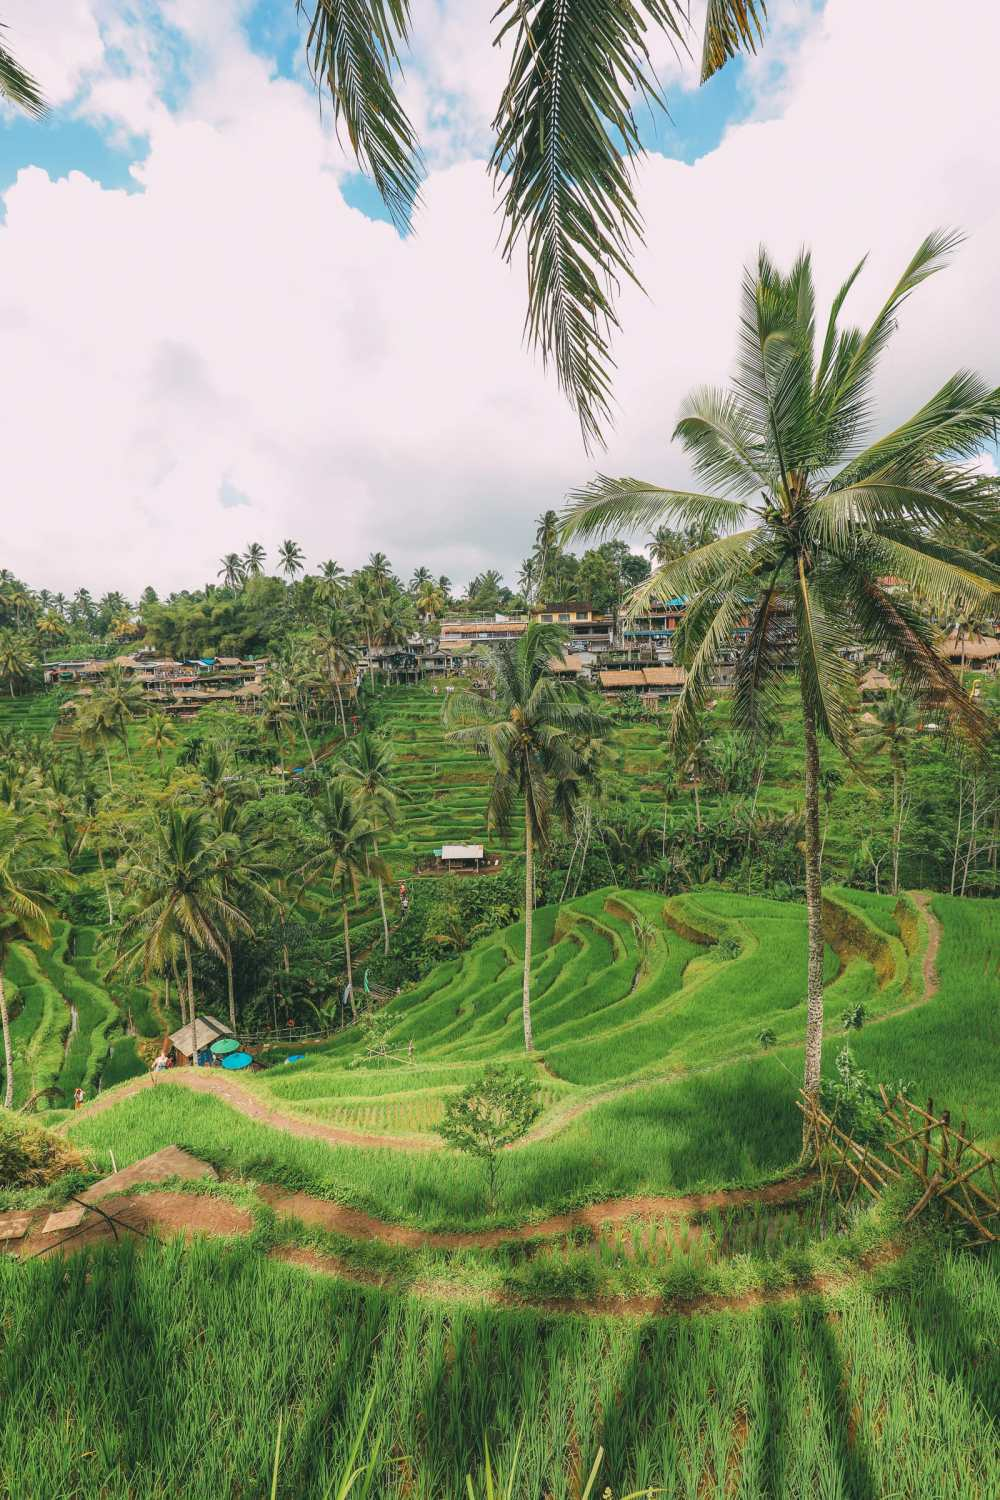 Bali Travel - Tegalalang Rice Terrace In Ubud And Gunung Kawi Temple (15)